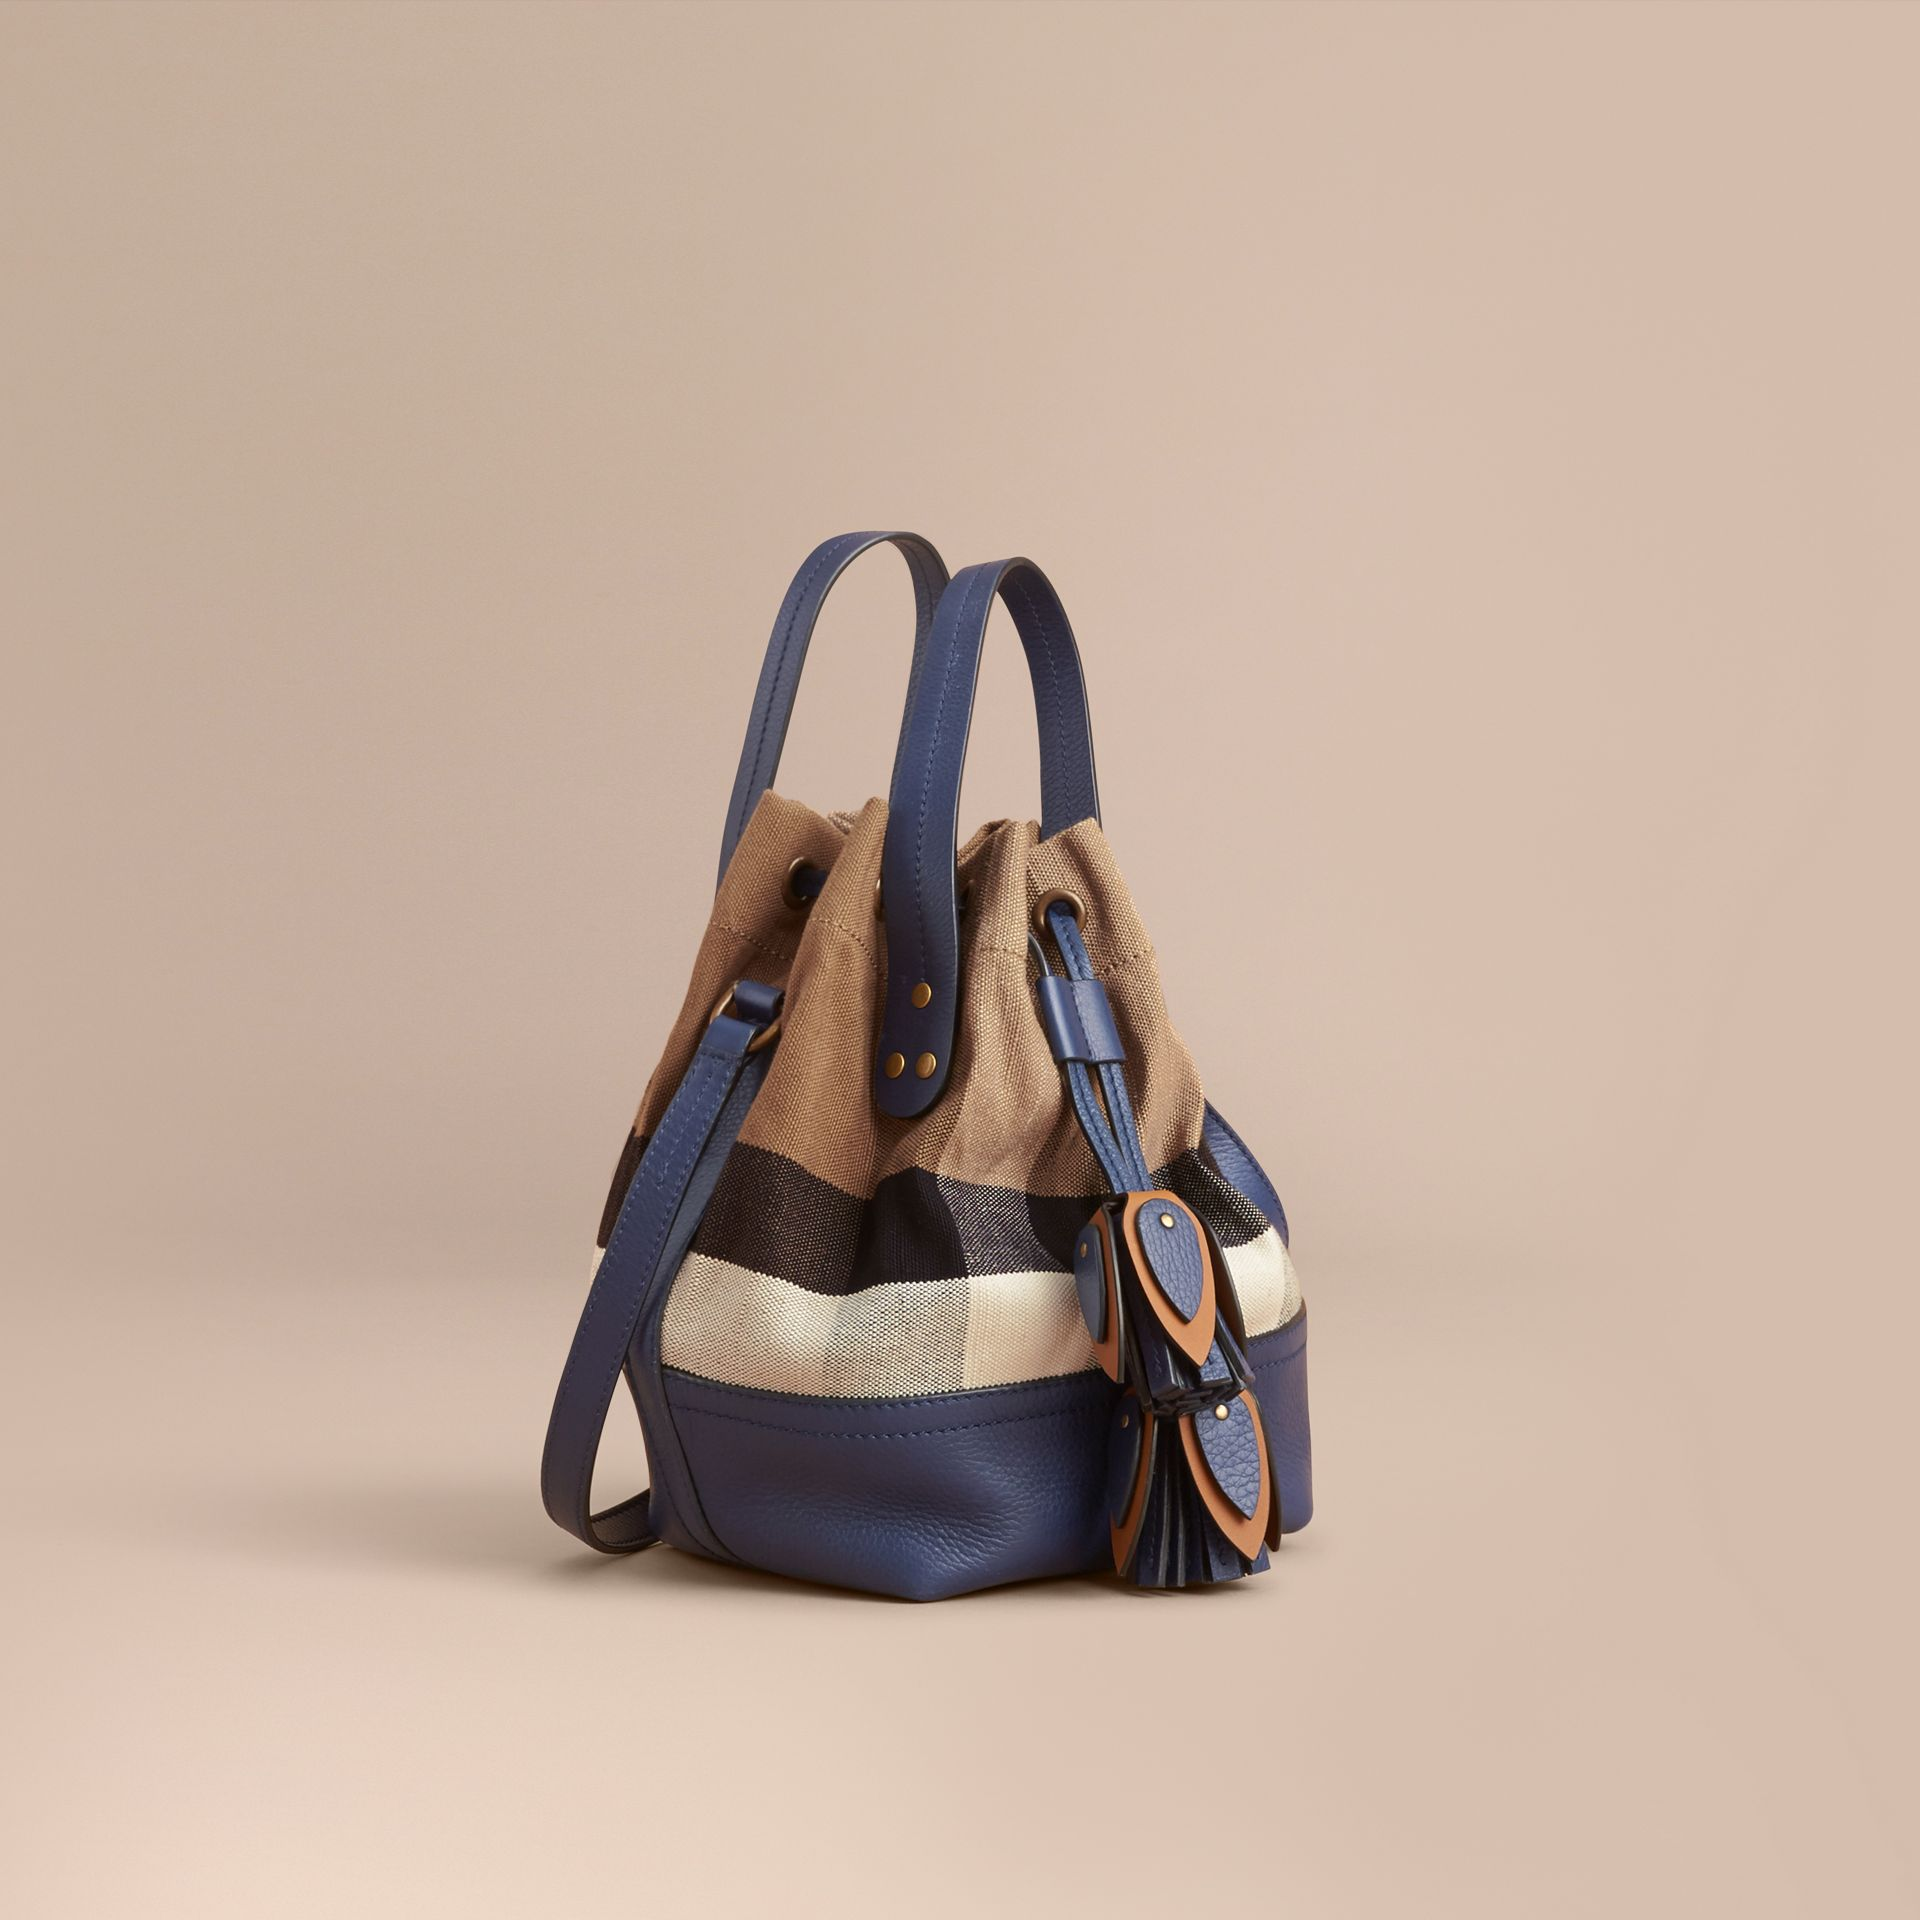 Small Canvas Check and Leather Bucket Bag in Brilliant Navy - Women | Burberry United States - gallery image 1